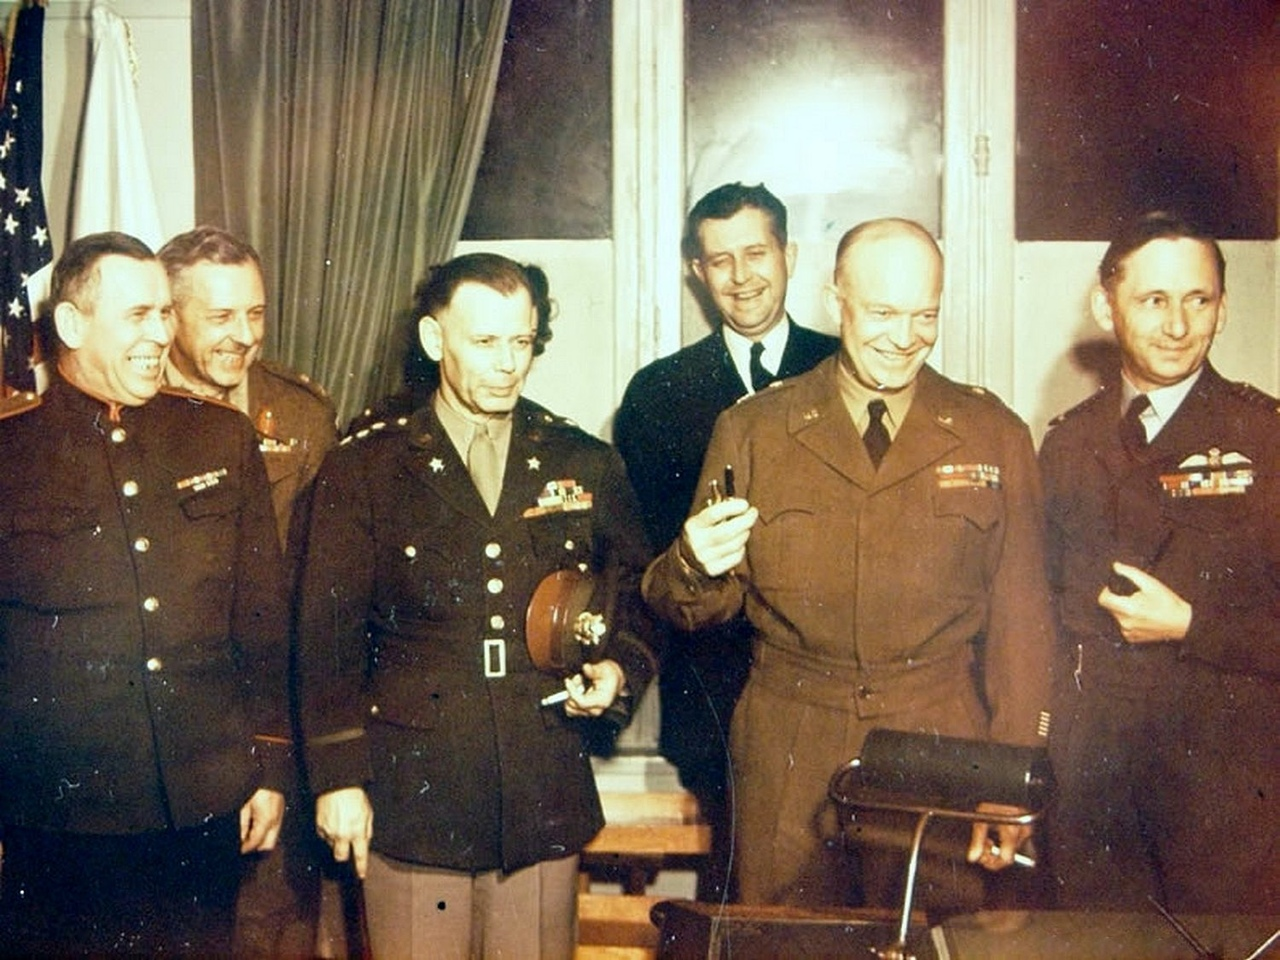 Representatives of the Allied Command after the signing of the surrender of Germany to Reims on May 7, 1945.